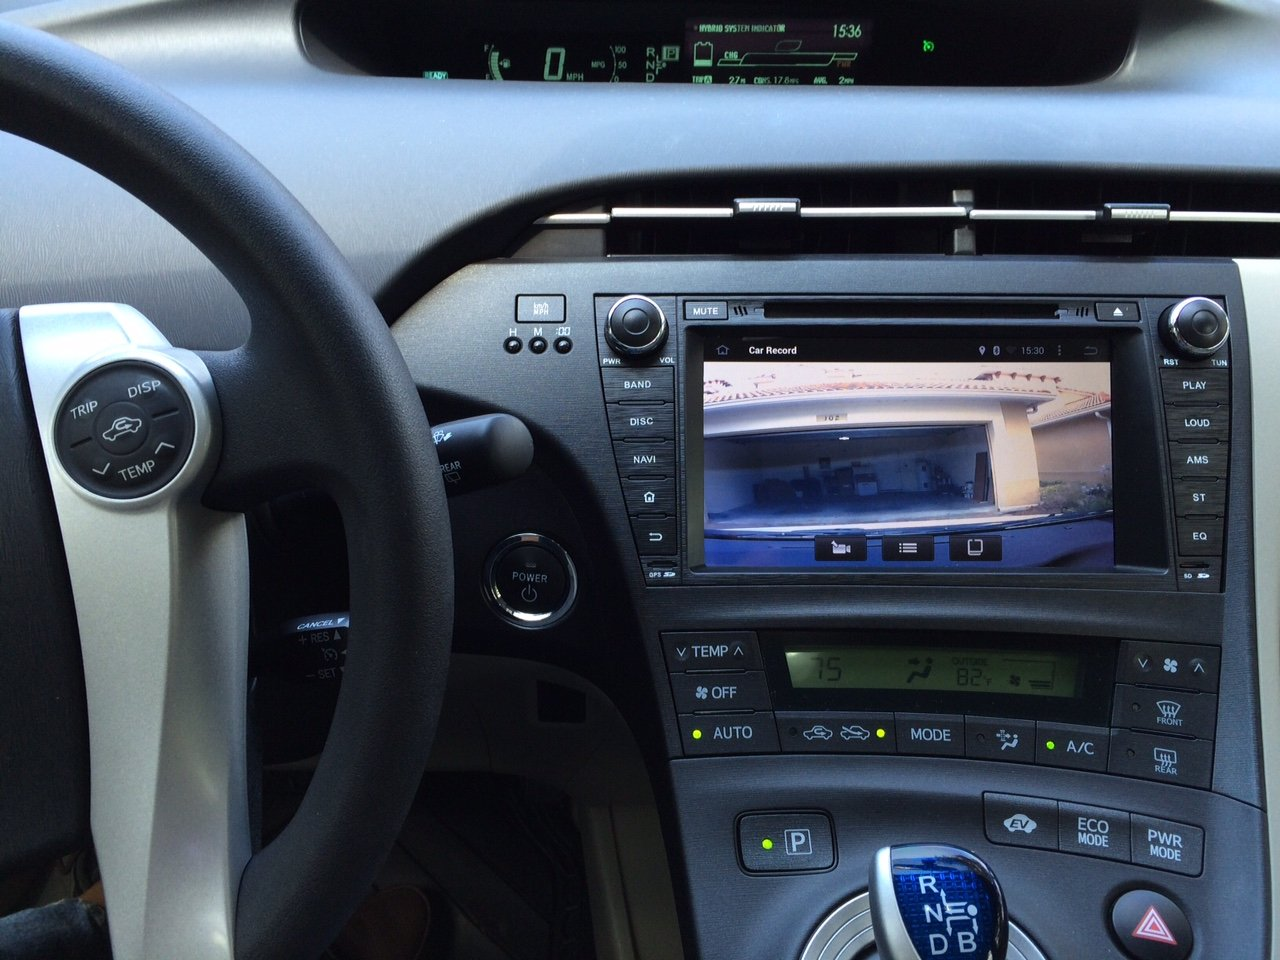 2010 prius aftermarket radio installer